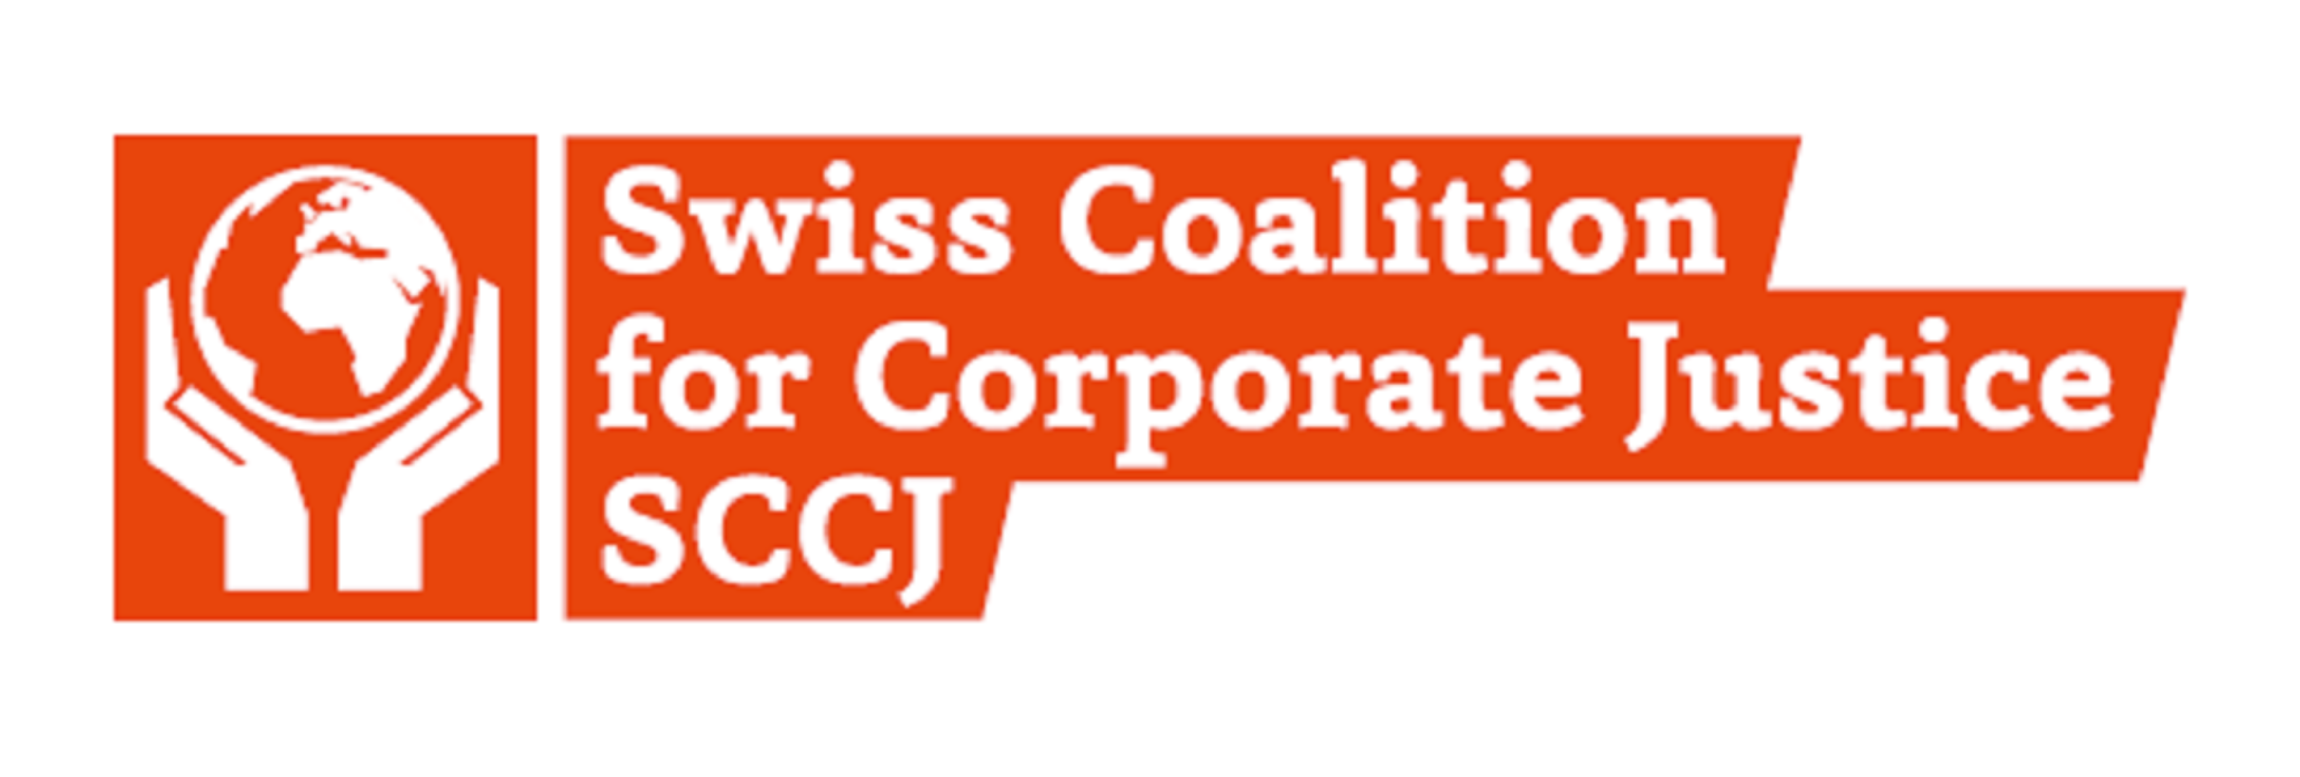 Swiss Coalition for Corporate Justice